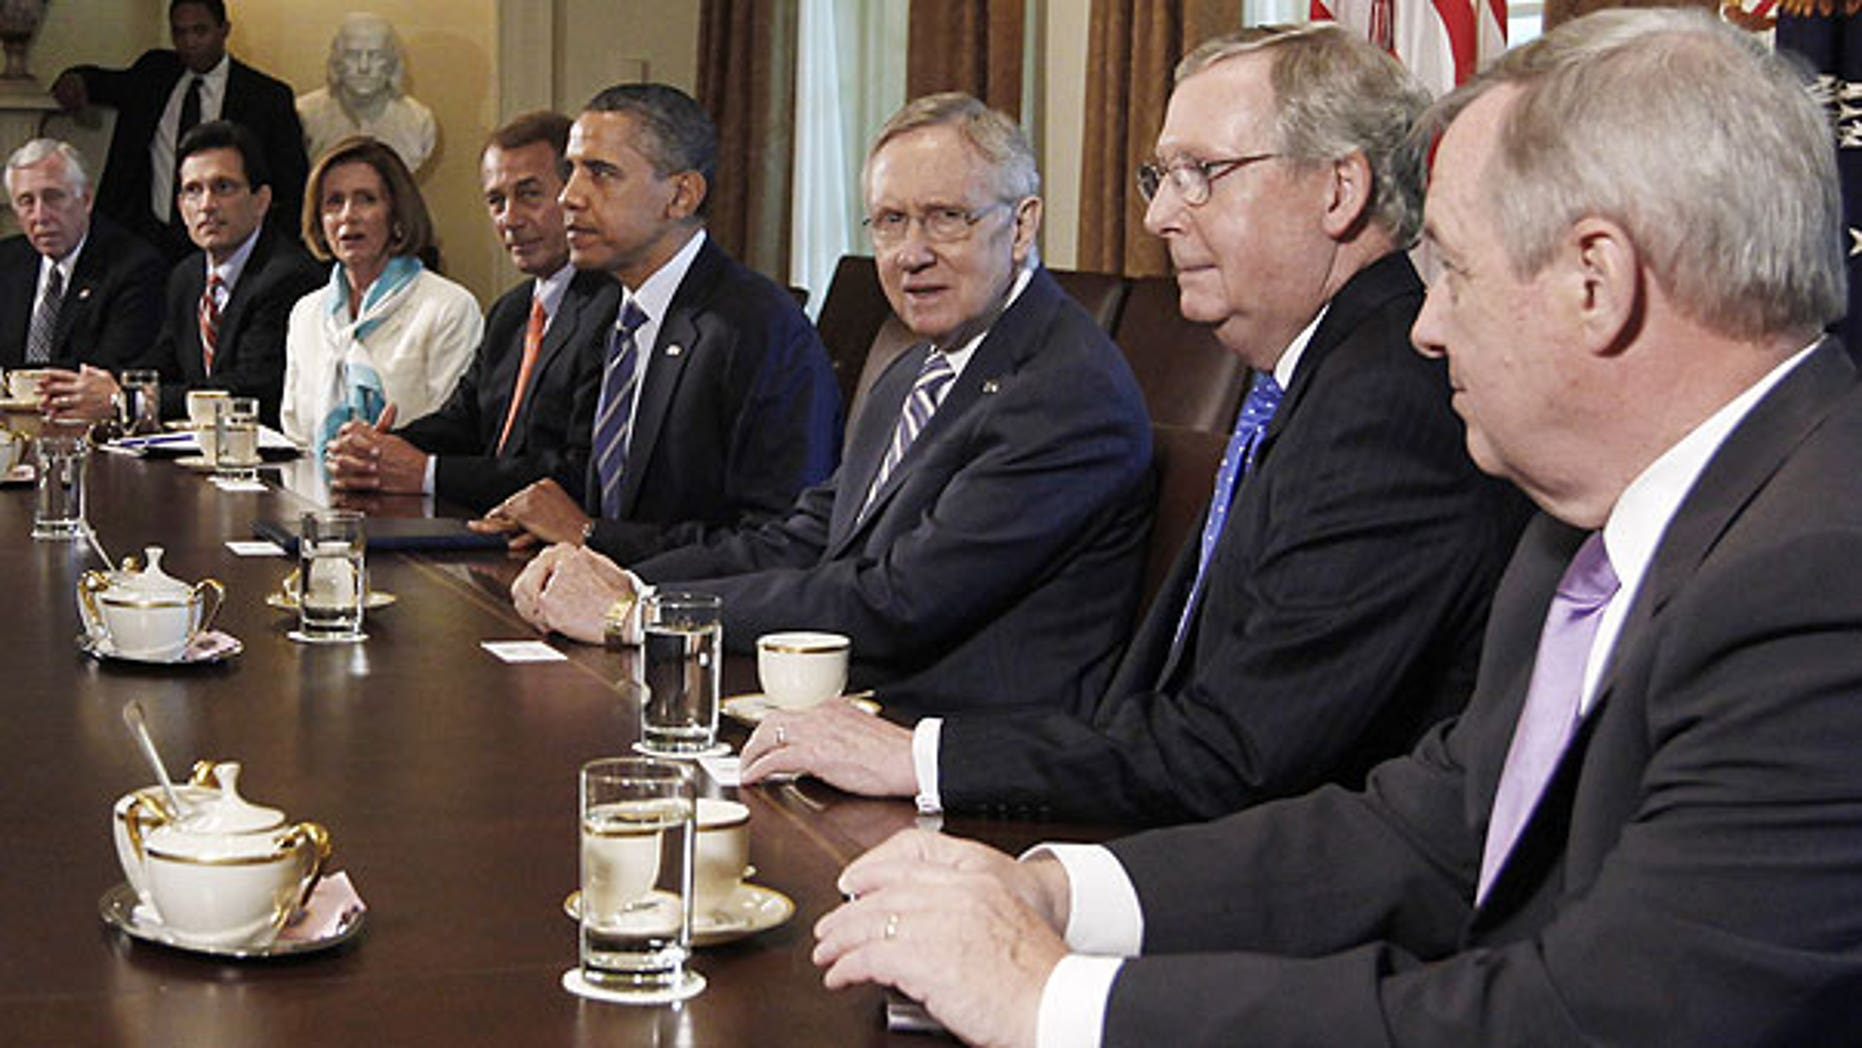 July 7: President Barack Obama meets with the Congressional leadership in the Cabinet Room of the White House in Washington, to discuss the debt. From left are, House Minority Whip Steny Hoyer of Md., House Majority Leader Eric Cantor of Va., House Minority Leader Nancy Pelosi of Calif., House Speaker John Boehner of Ohio, the president, Senate Majority Leader Harry Reid of Nev., Senate Minority Leader Mitch McConnell of Ky., and Senate Majority Whip Richard Durbin of Ill.